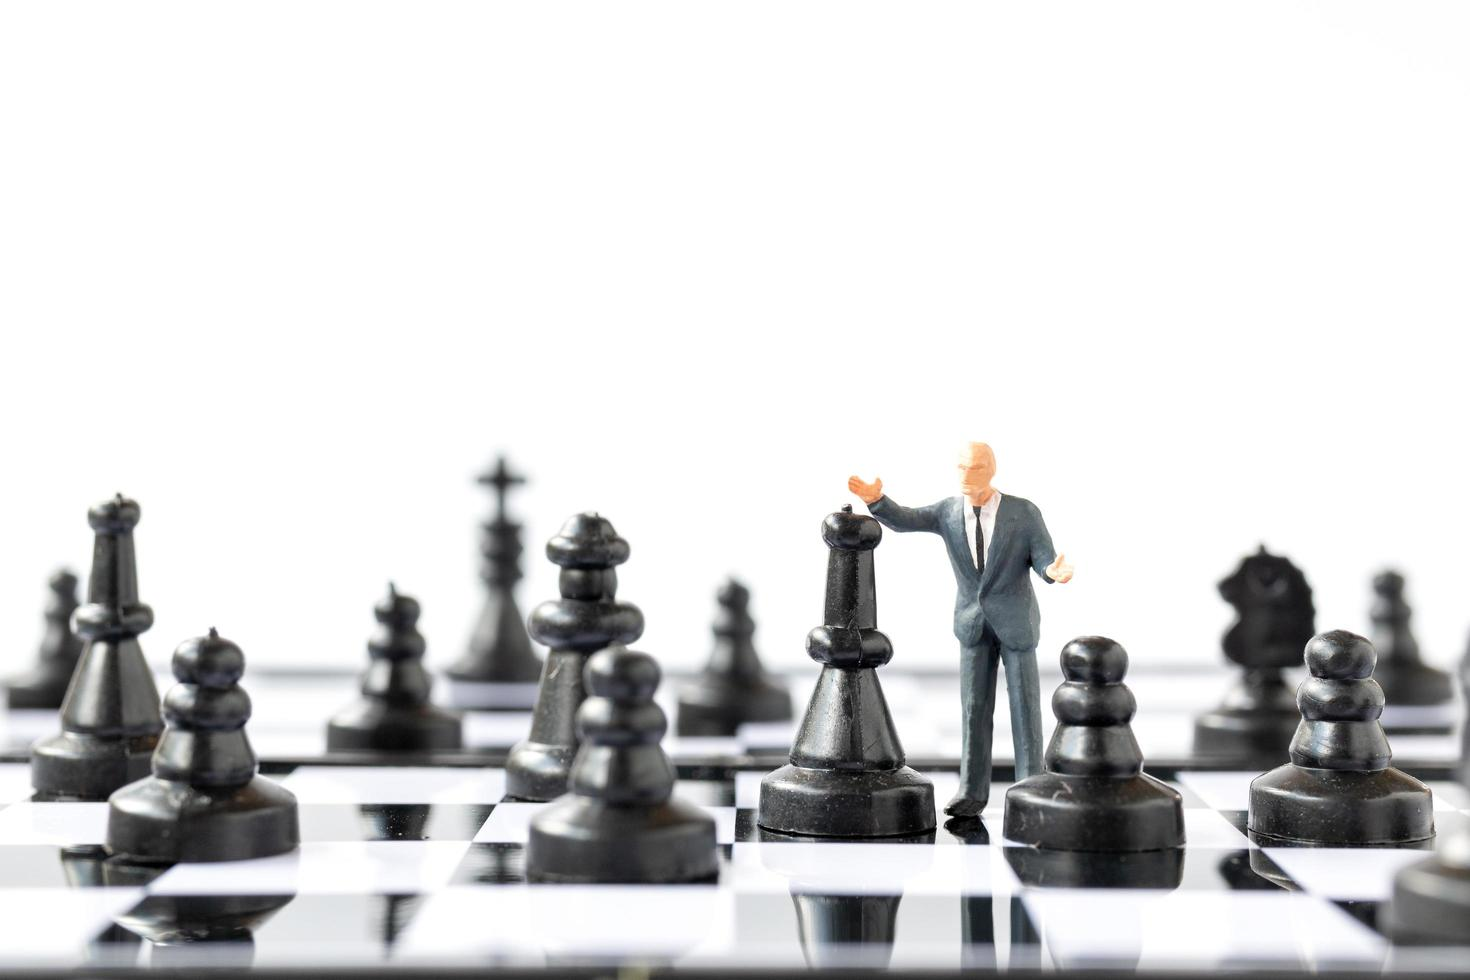 Miniature businessman standing on a chessboard, business and competition concept photo